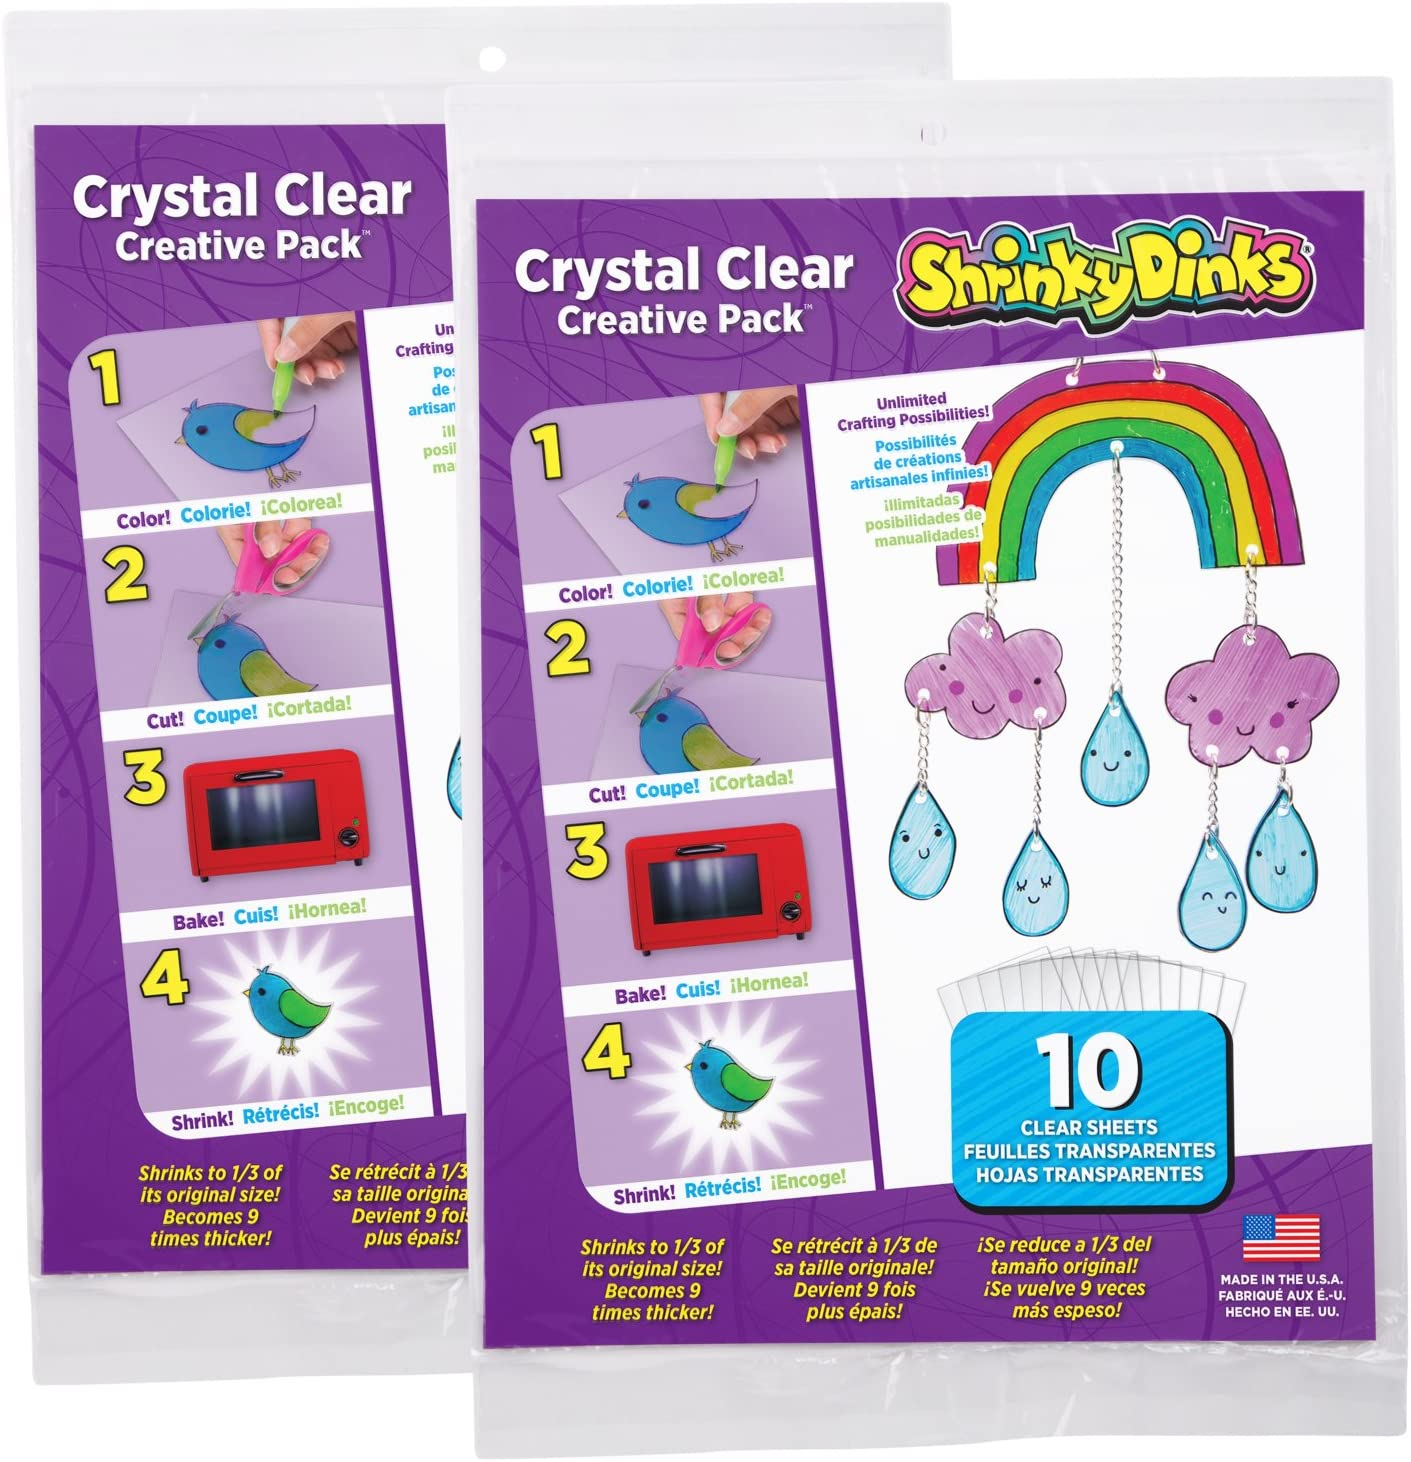 Shrinky Dinks Creative Pack 20 Sheets Crystal Clear